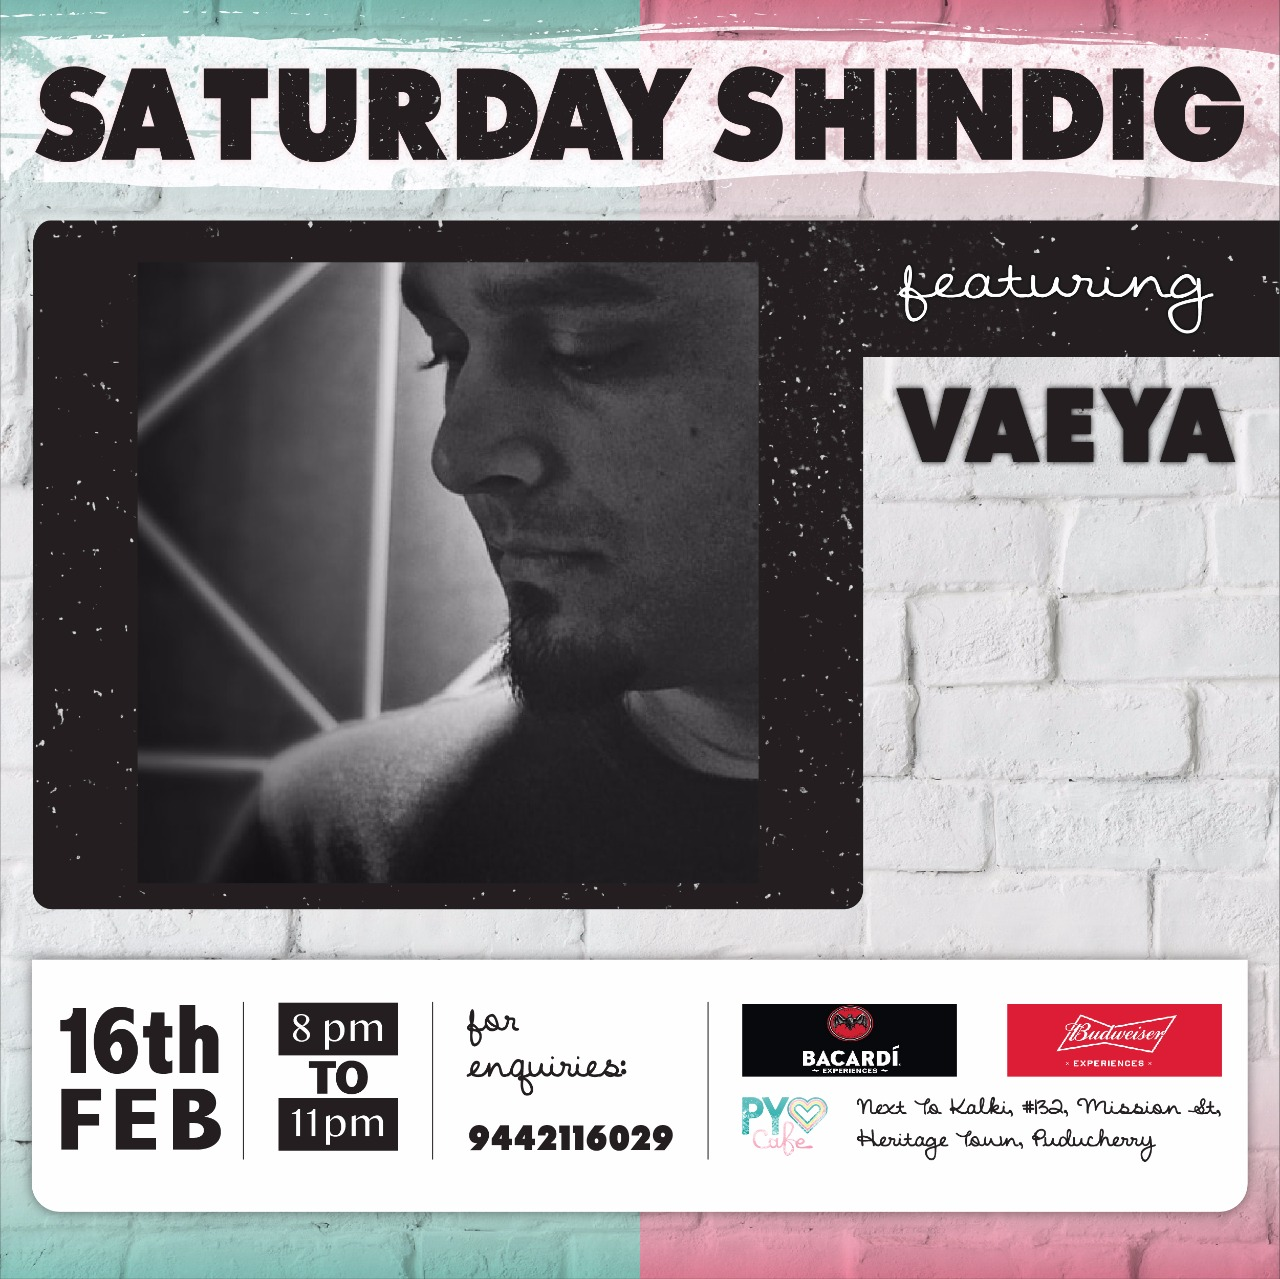 Saturday Shindig featuring VAEYA